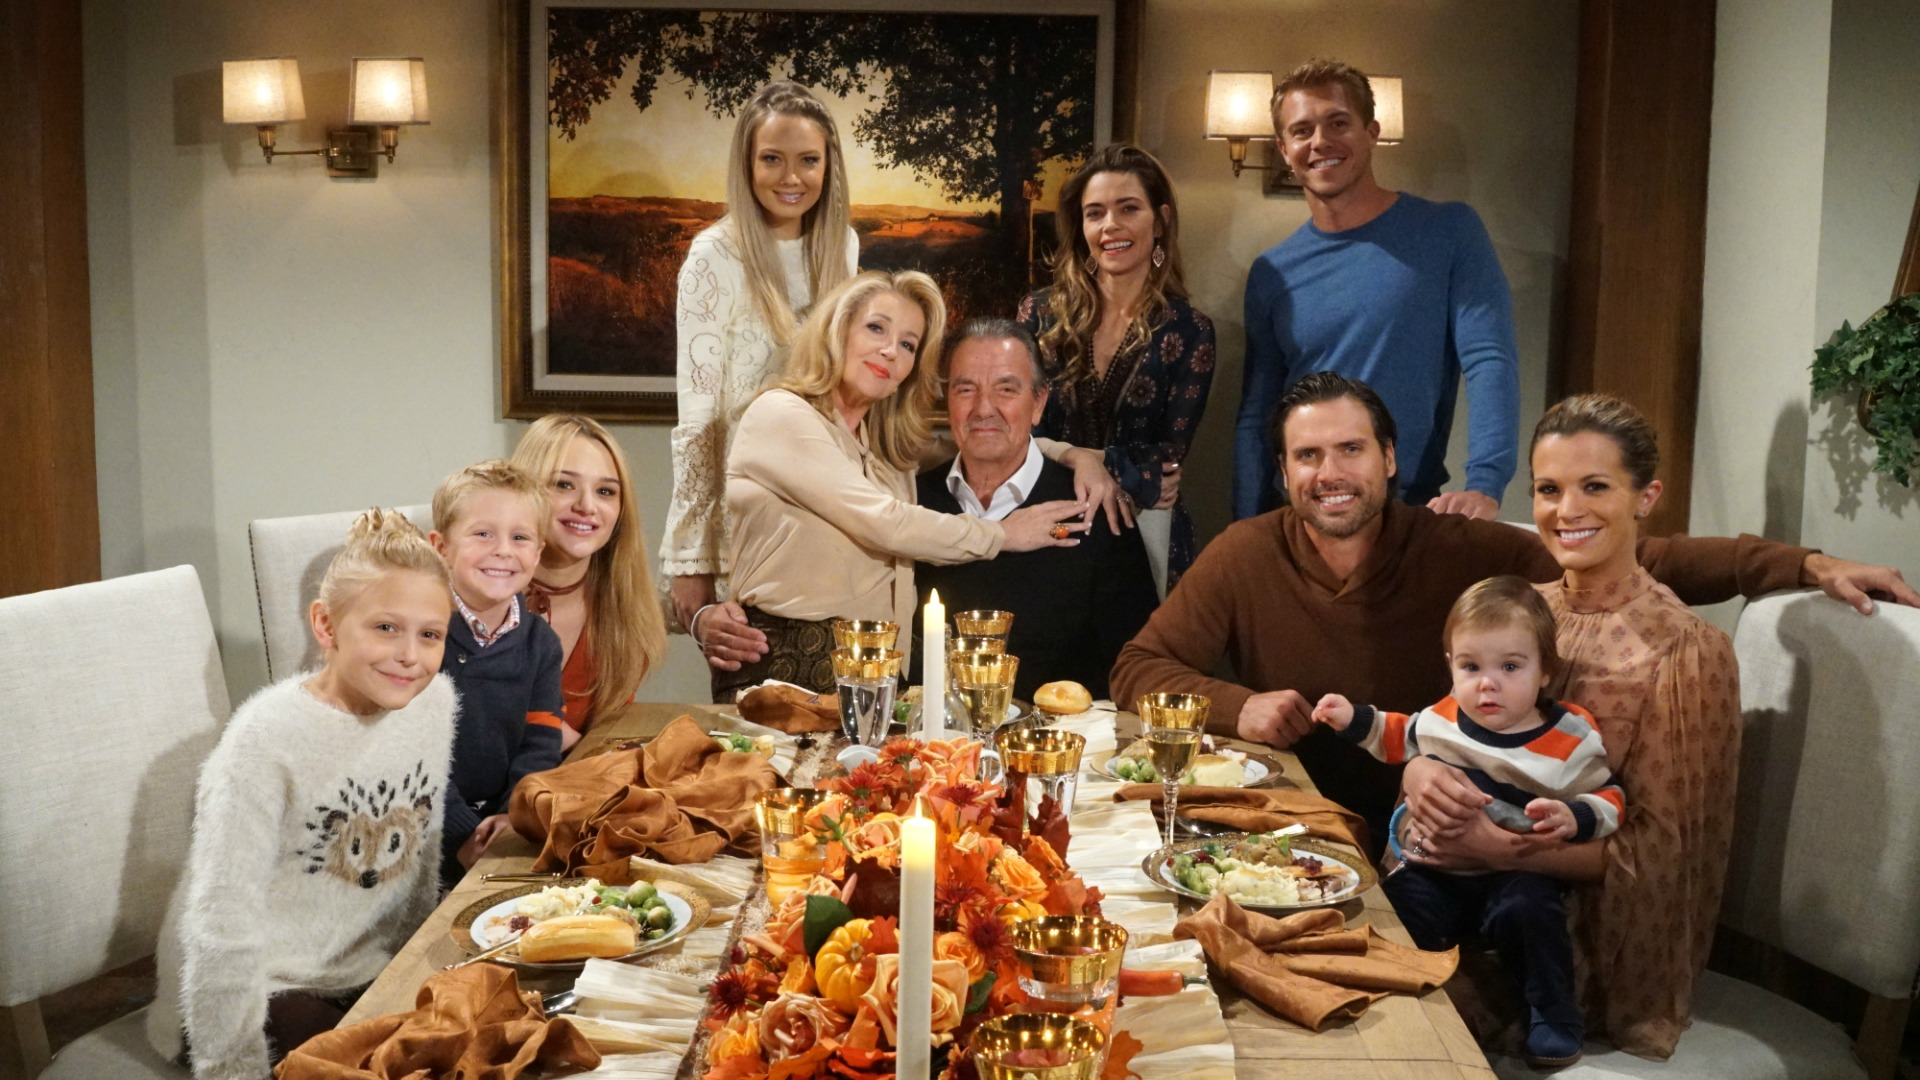 The residents of Genoa City put their differences aside to celebrate Thanksgiving.